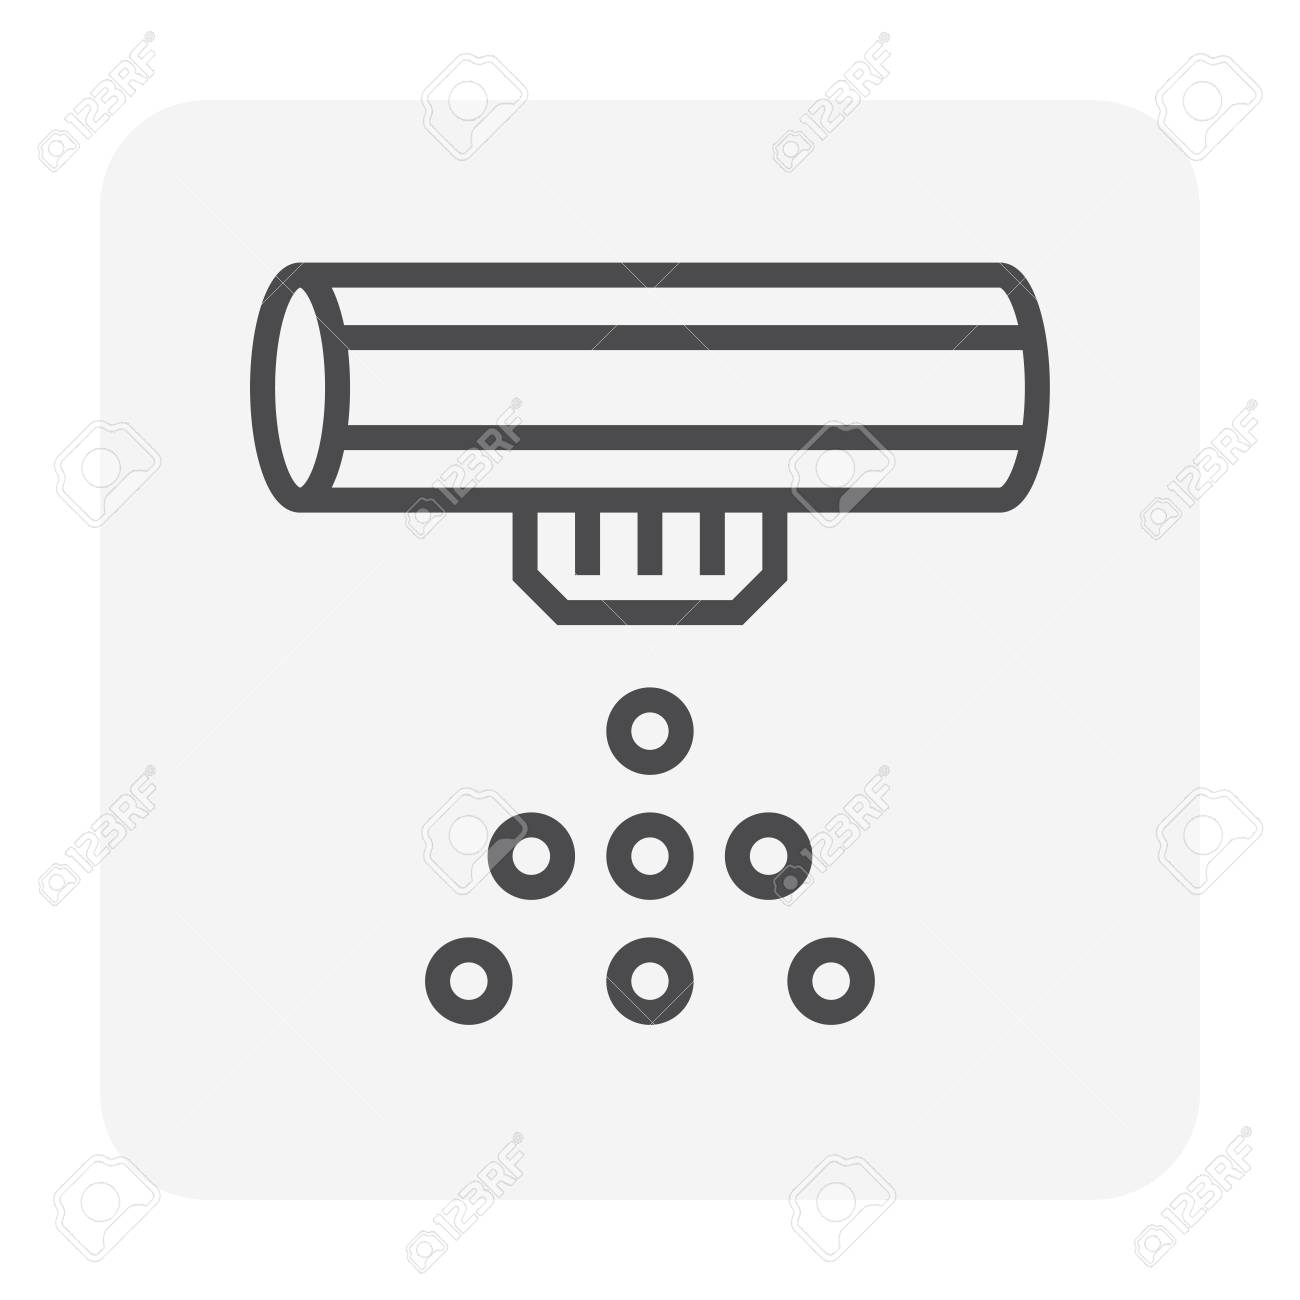 Automatic water sprinkler icon, 64x64 pixel and editable stroke